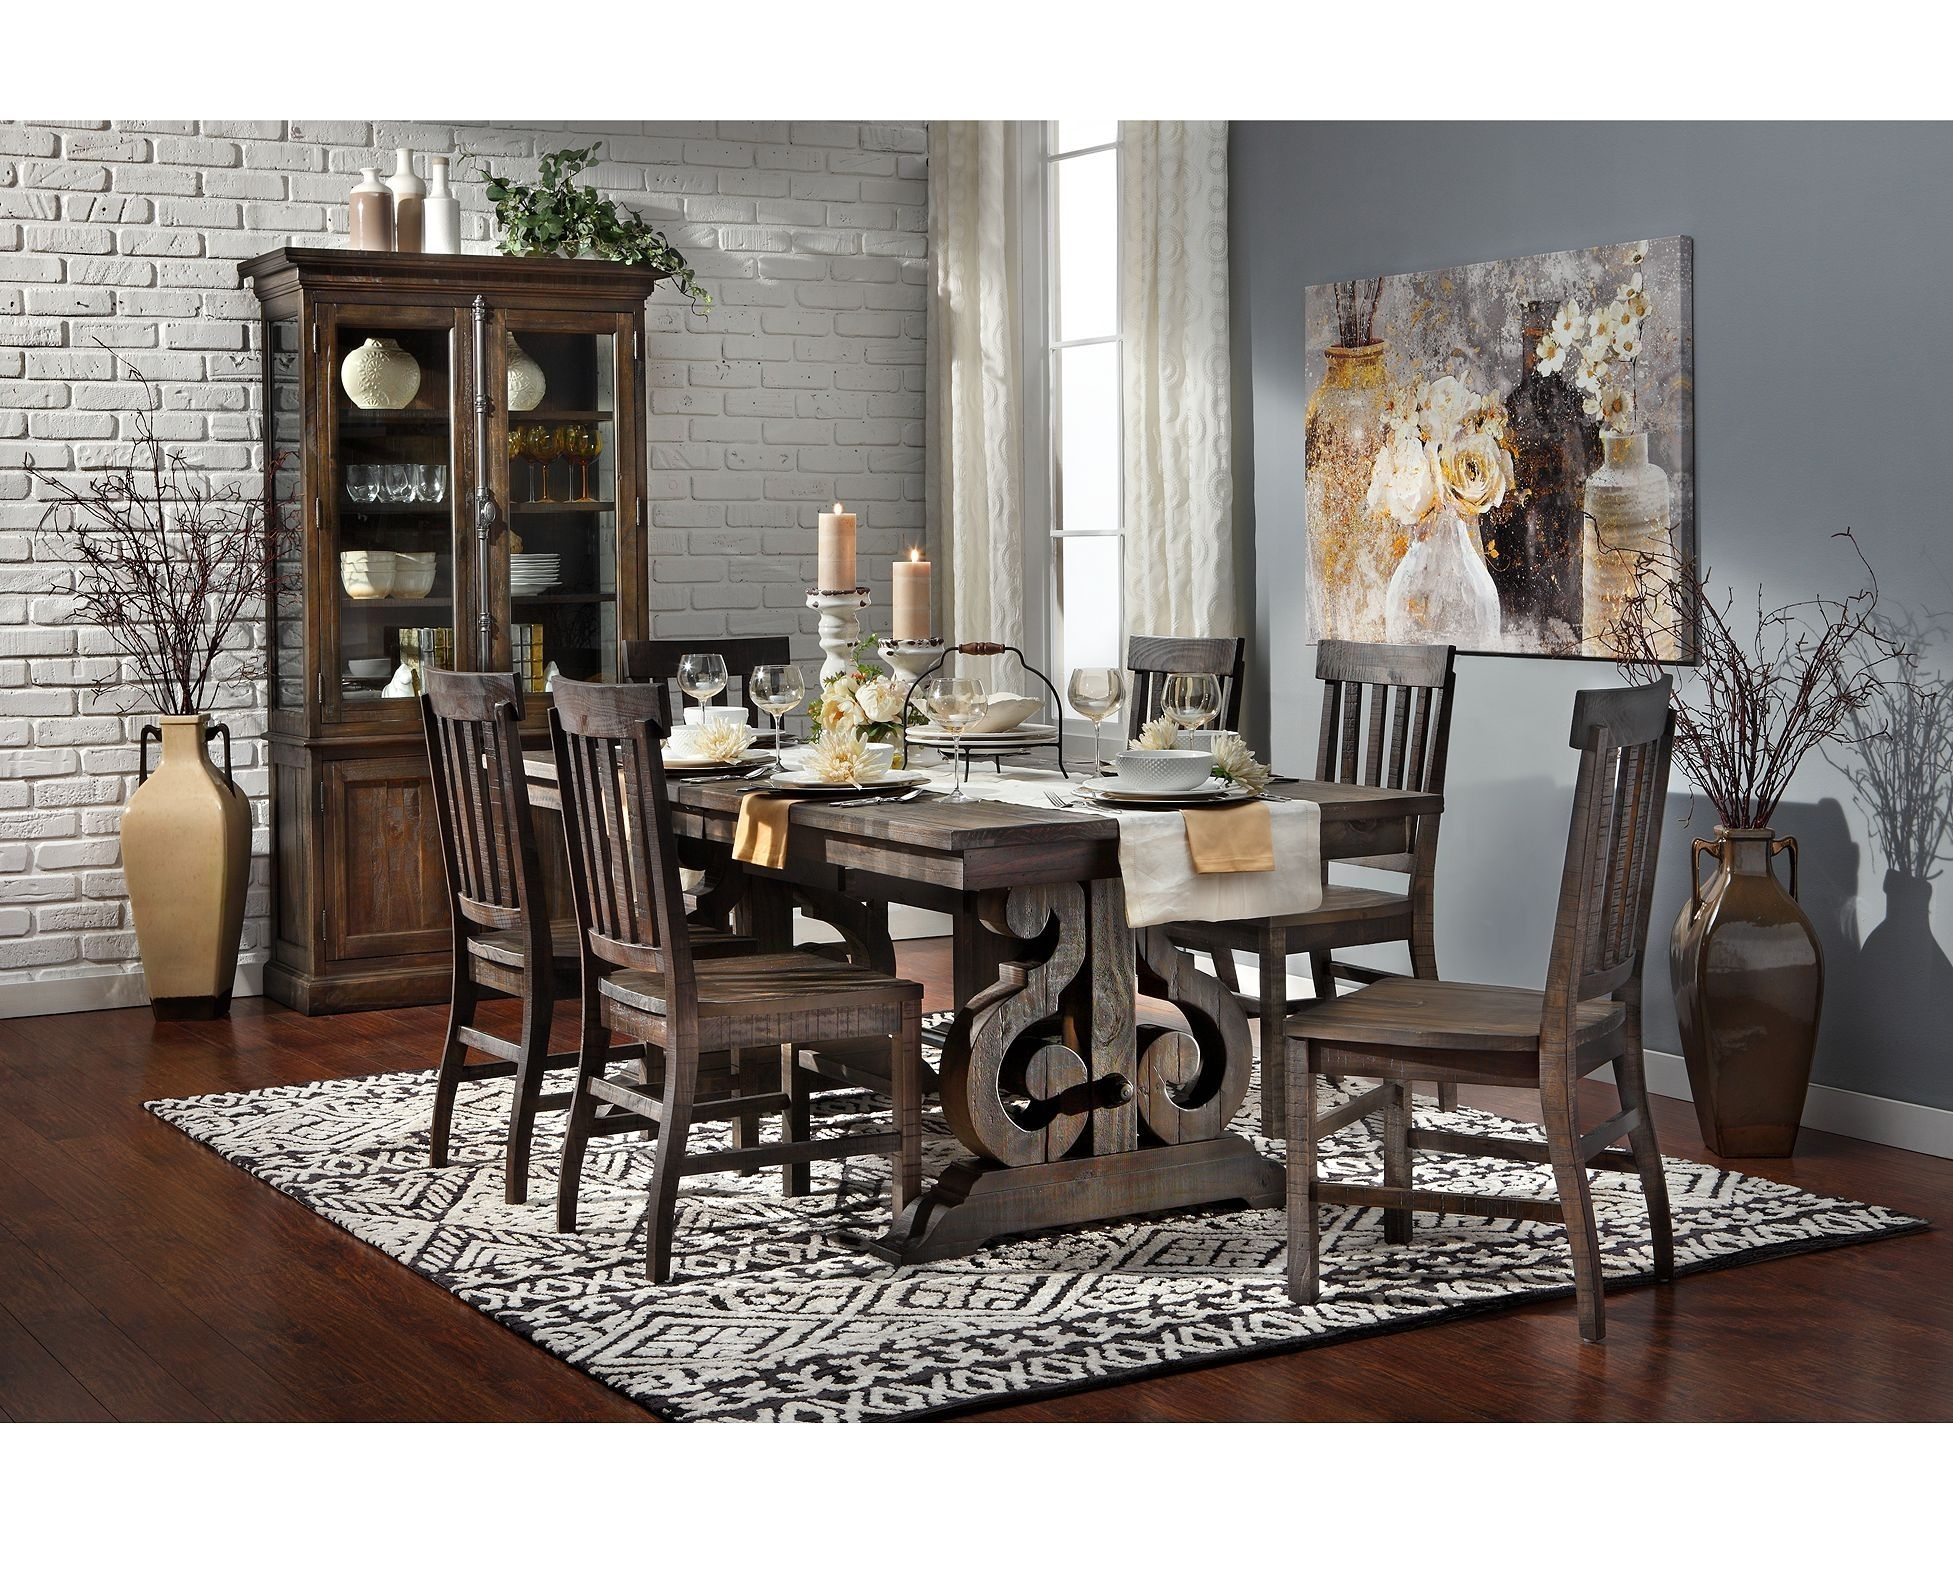 Sedona Dining Table | Dining Room | Pinterest | Dining, Magnolia Regarding Recent Magnolia Home Bench Keeping 96 Inch Dining Tables (Image 14 of 20)